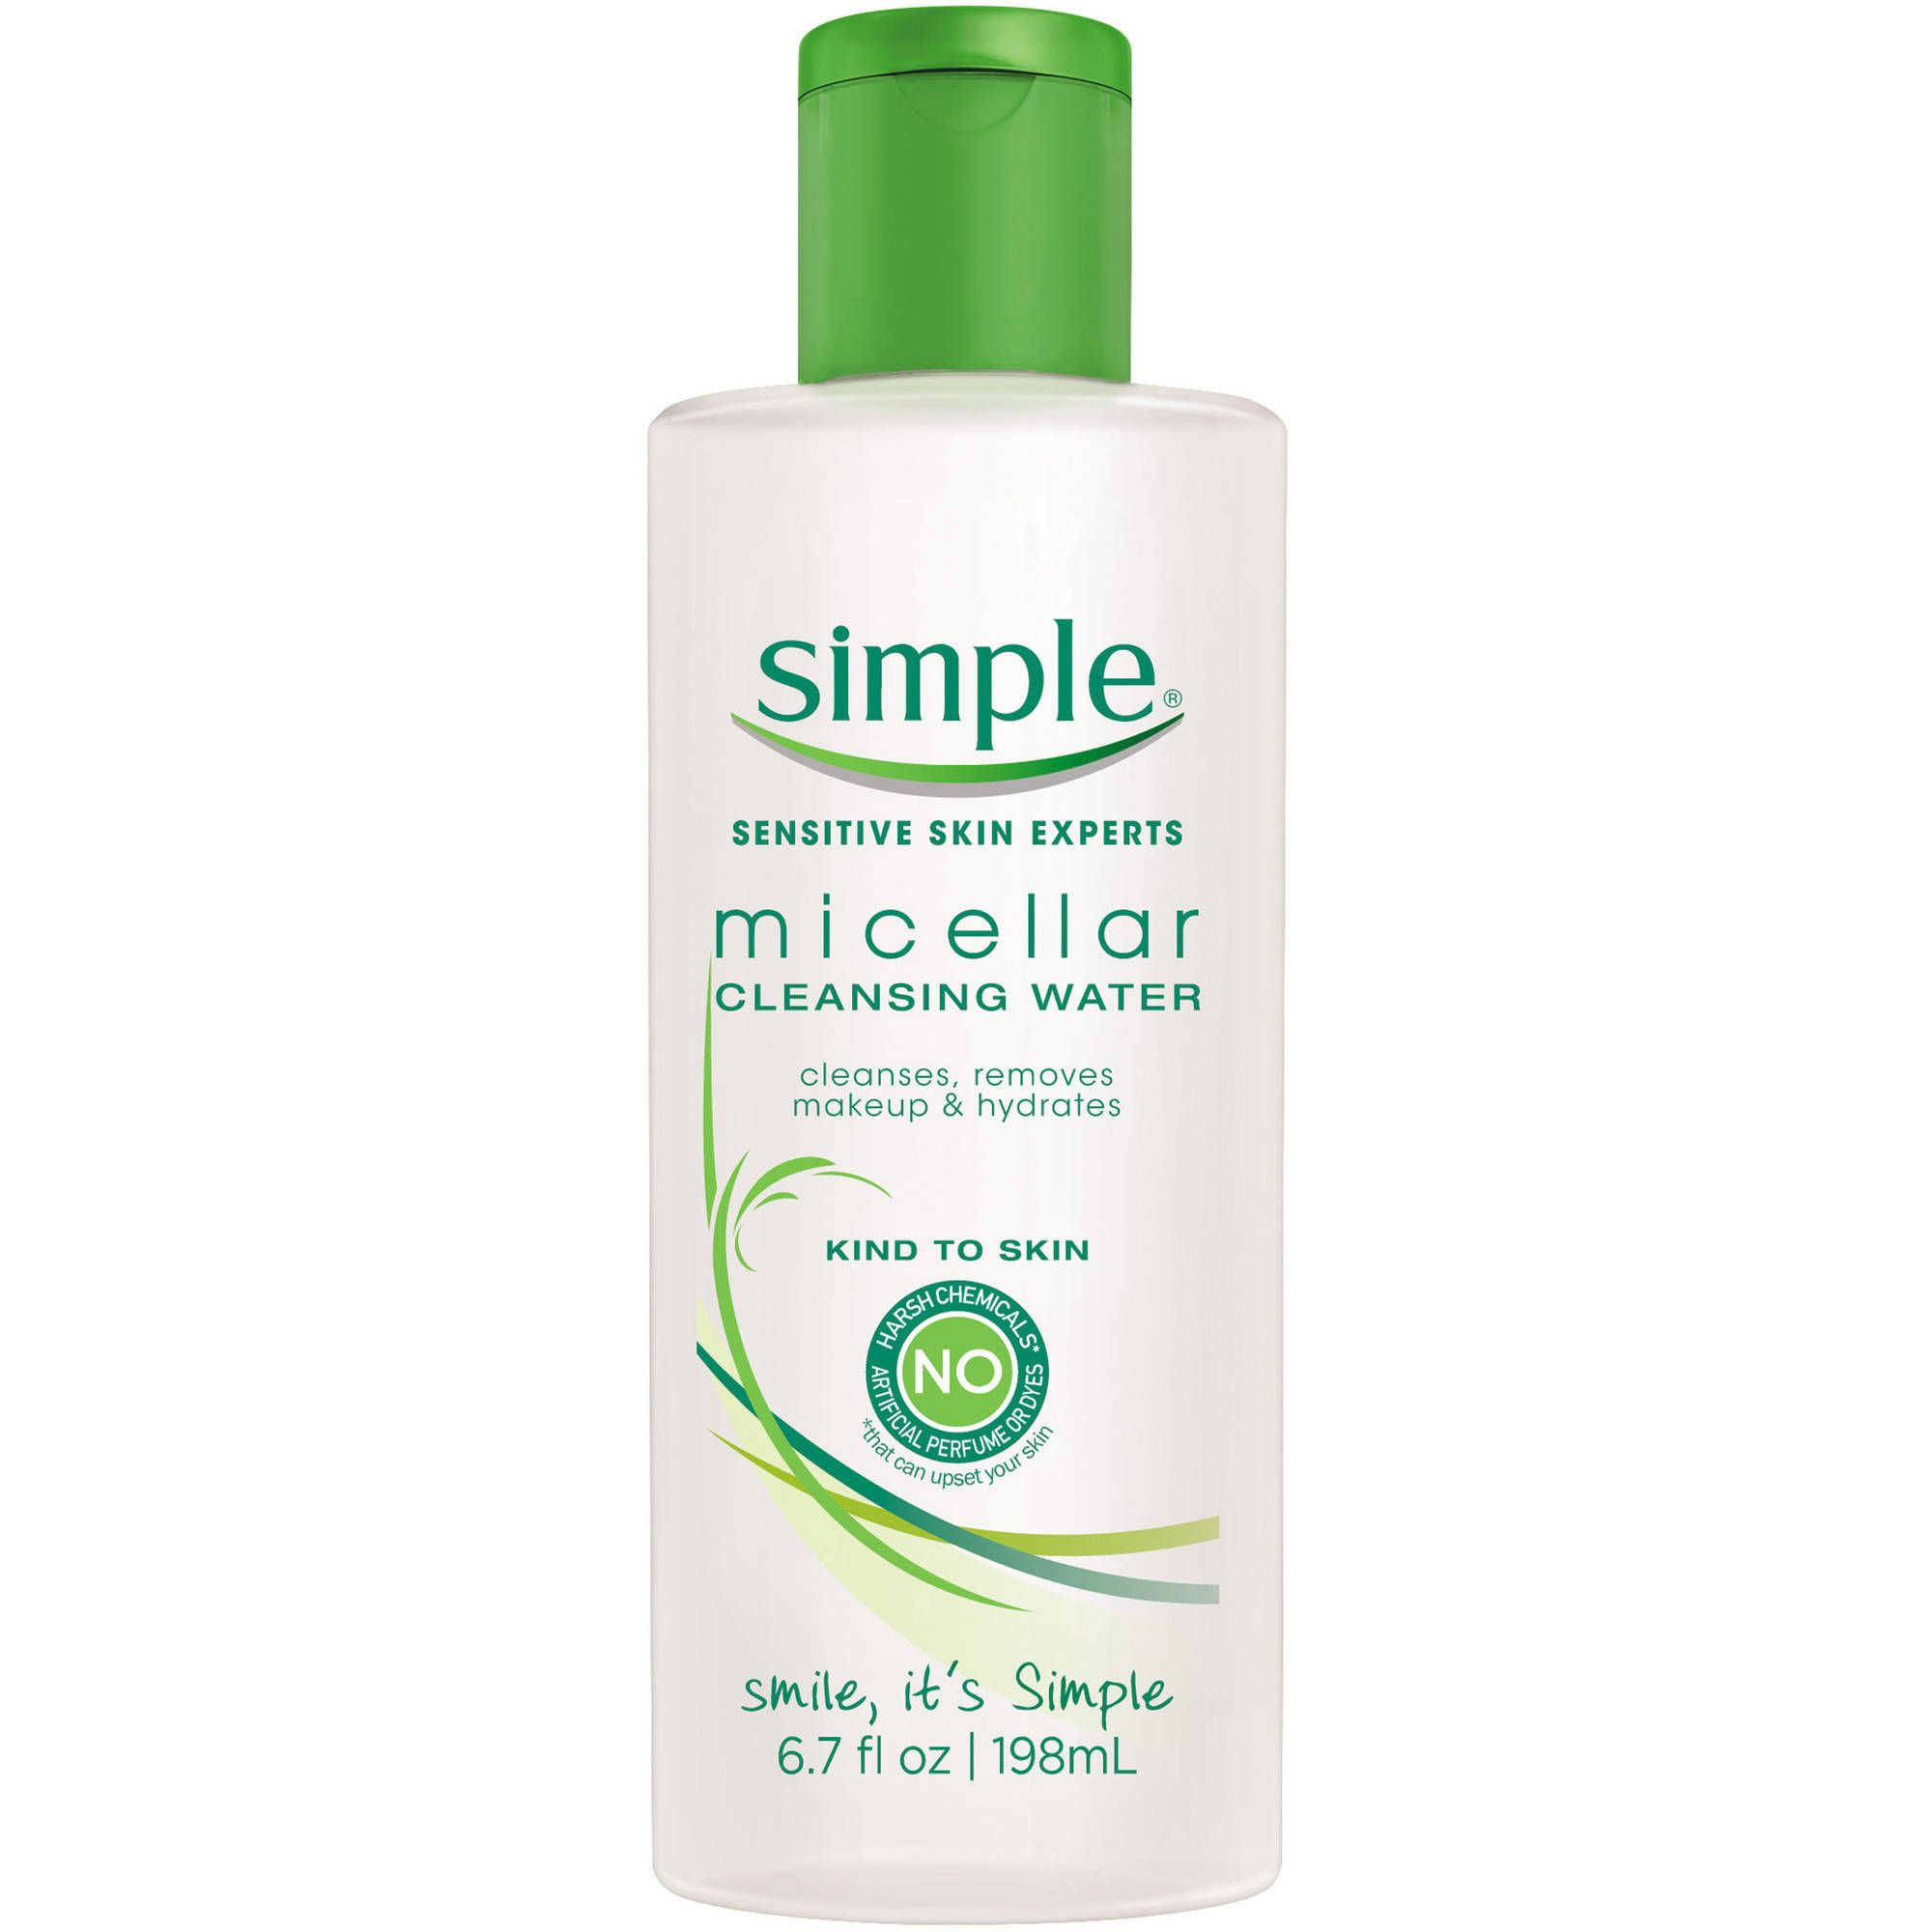 Simple Micellar Cleansing Water Beauty products